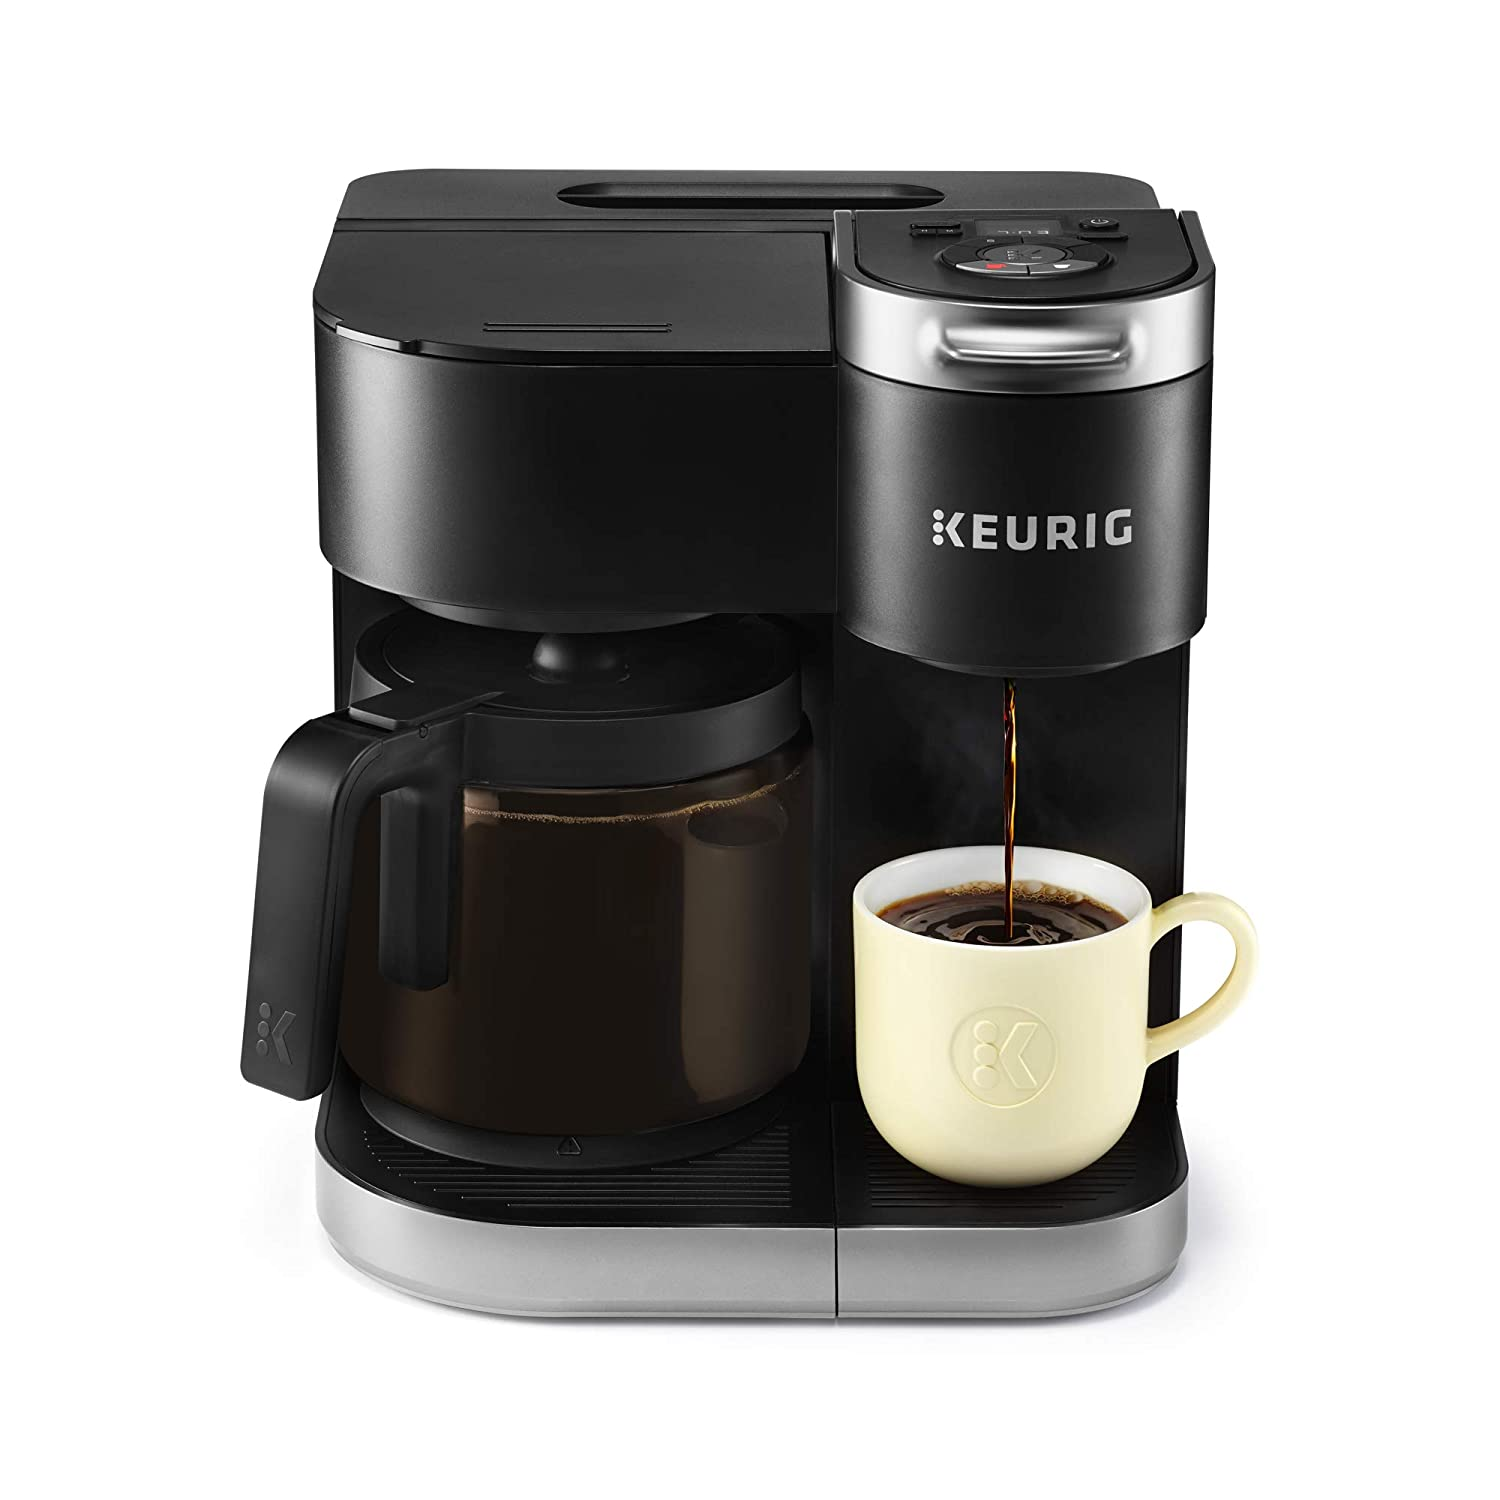 Keurig K-Duo Coffee Maker, Single Serve and 12-Cup Drip Coffee Brewer, Compatible with K-Cup Pods and Ground Coffee, Black